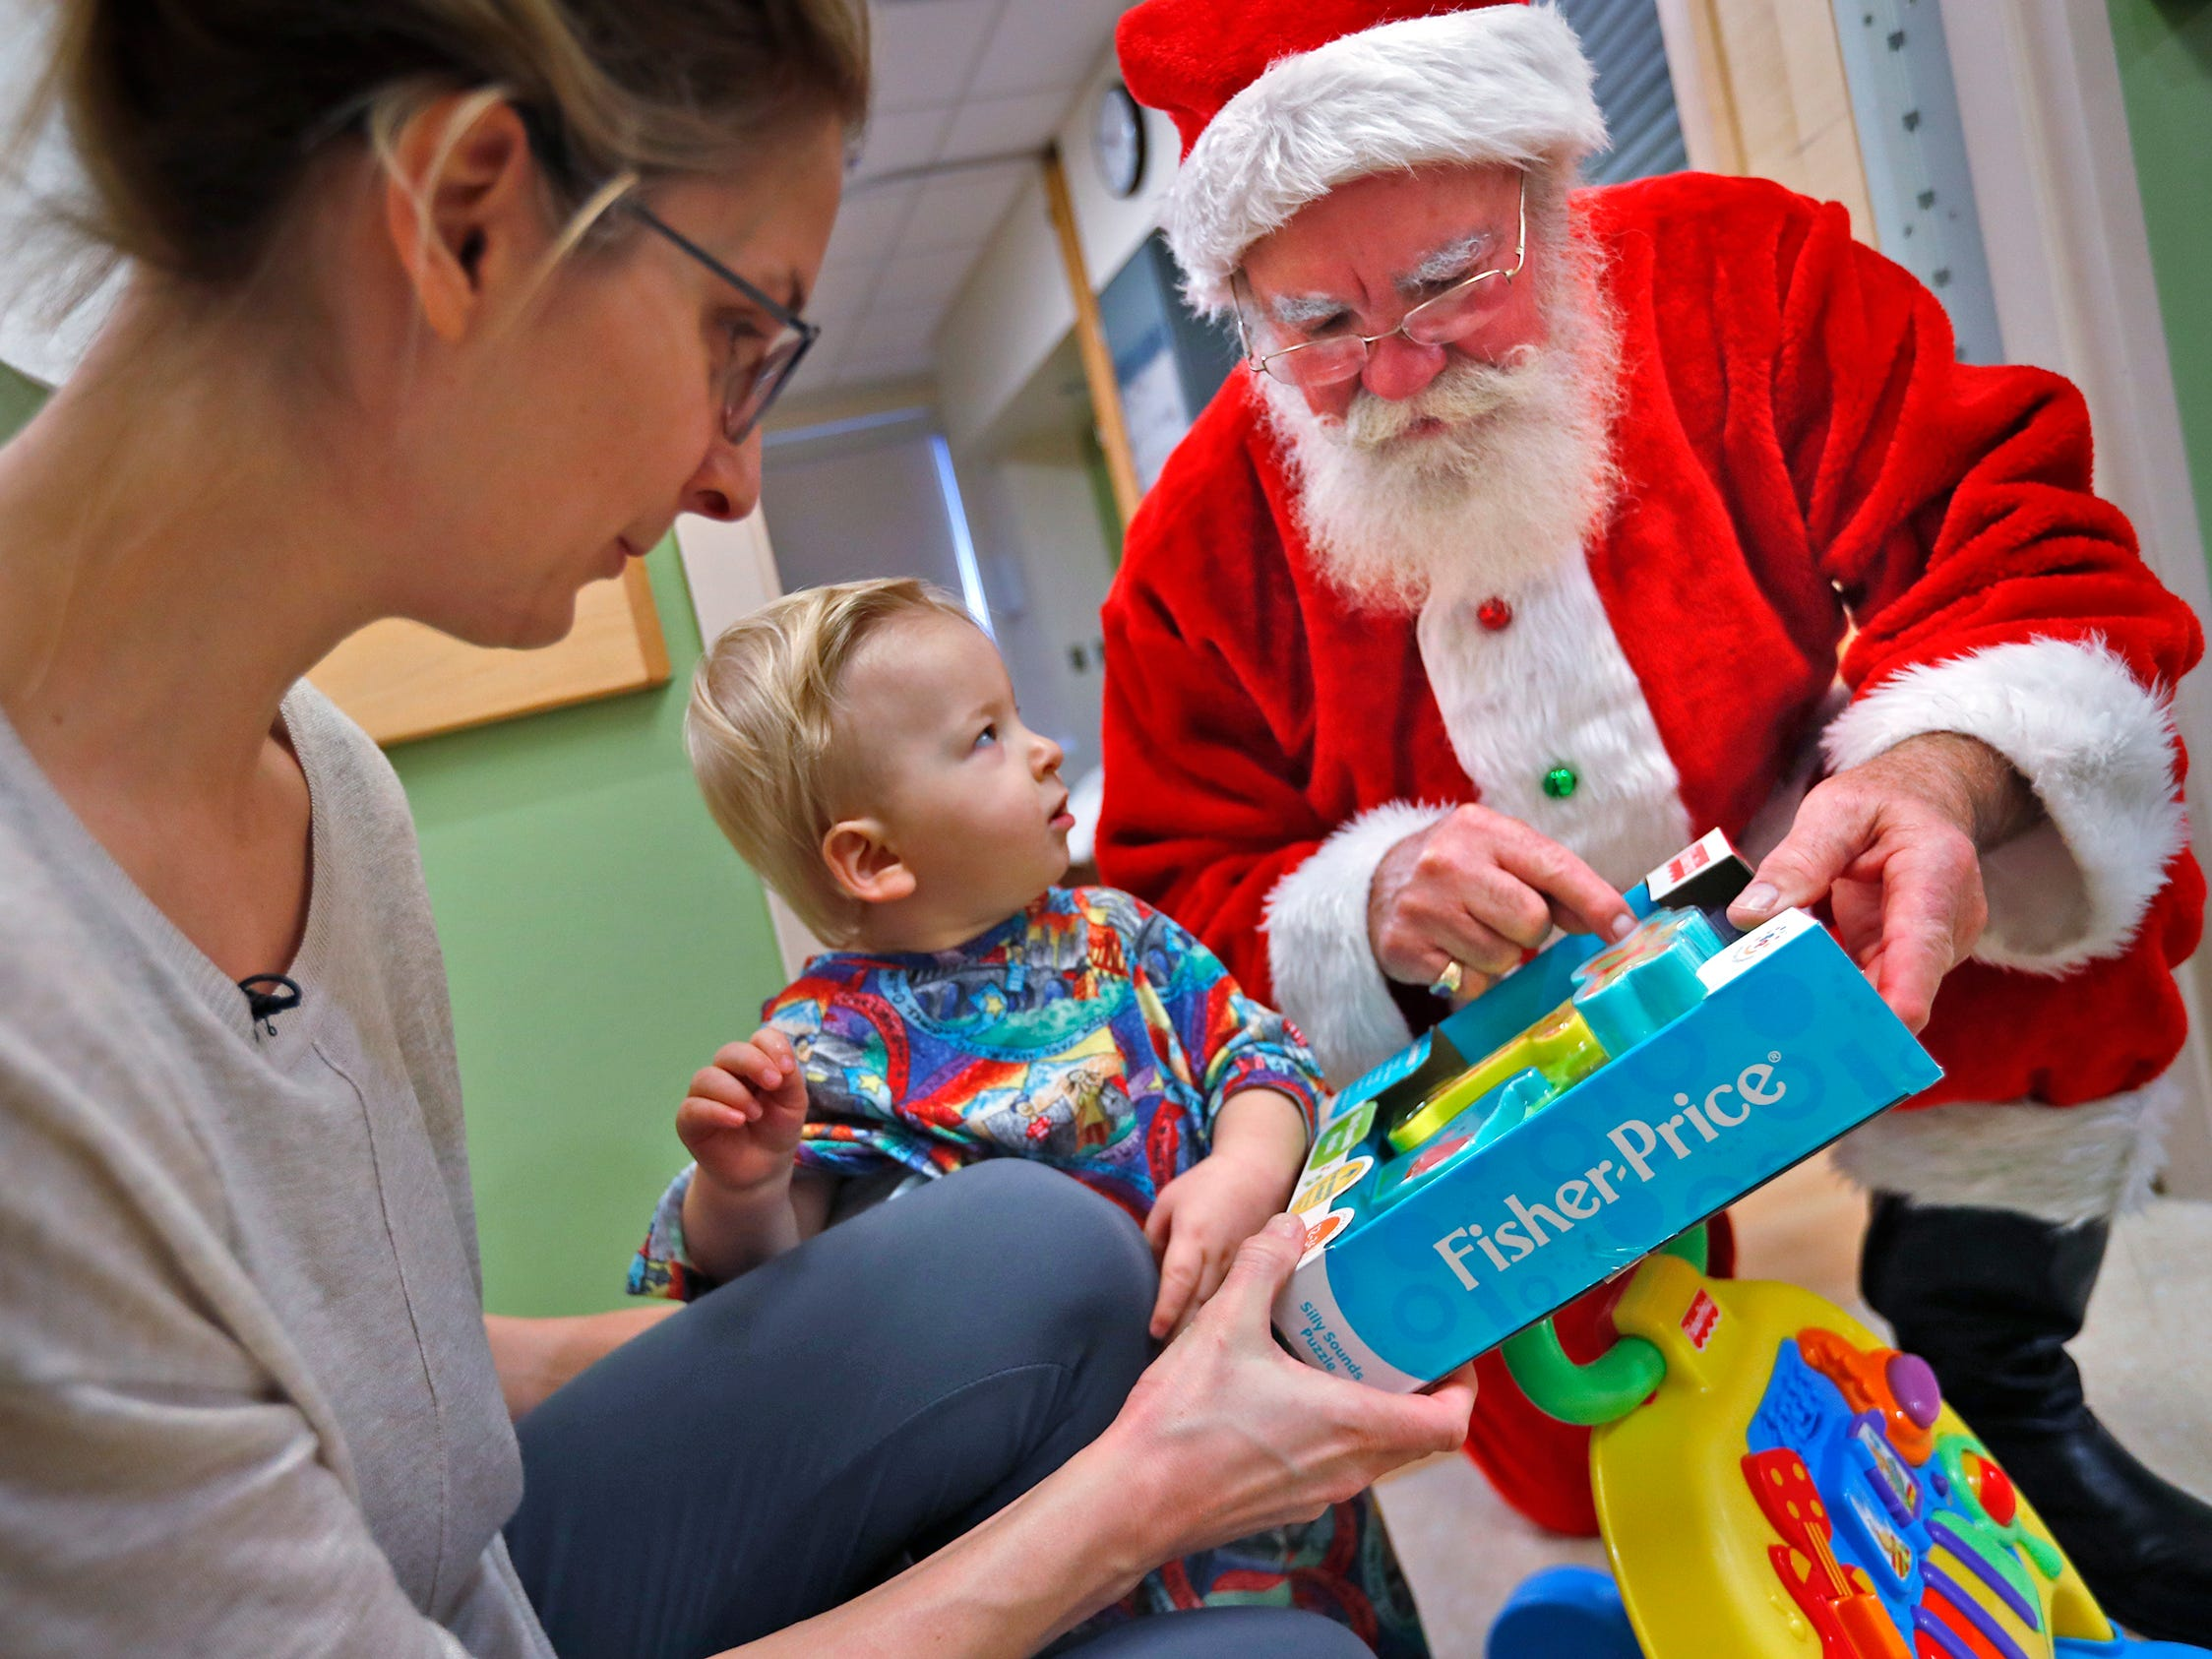 Finnick McCandless, center, sits with his mother, Celena McCandless, left, as they visit with Santa Claus, also know as Bill Armstrong, during Santa's visit with kids at Riley Children's Health, Thursday, Dec. 13, 2018.